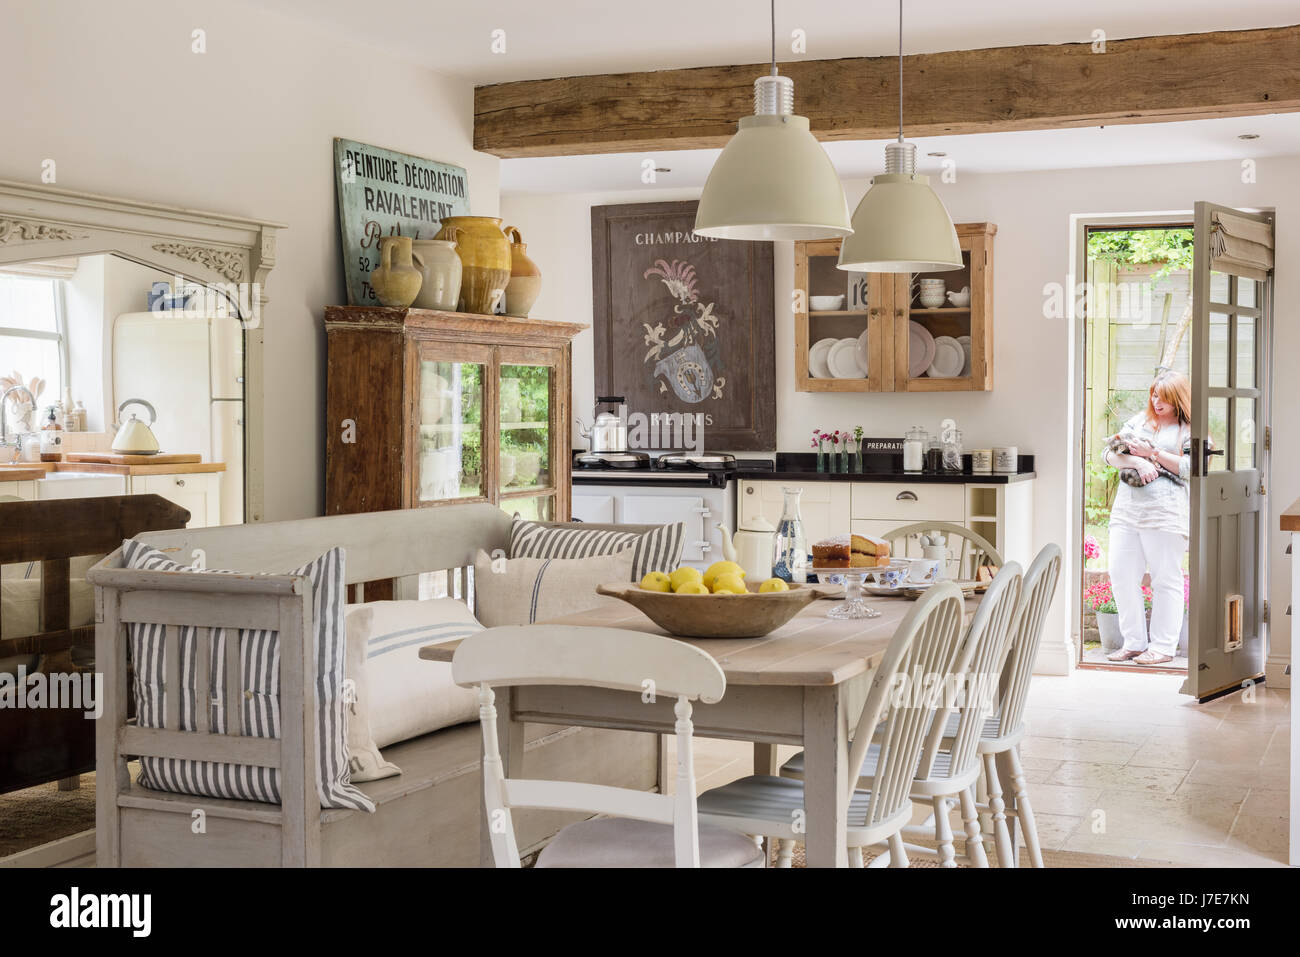 Open Plan Rustic Kitchen Diner With French / Scandinavian Feel. The Table  And Chairs Come From Haus And The Cushions Are From Cabbages U0026 Roses. The Pe